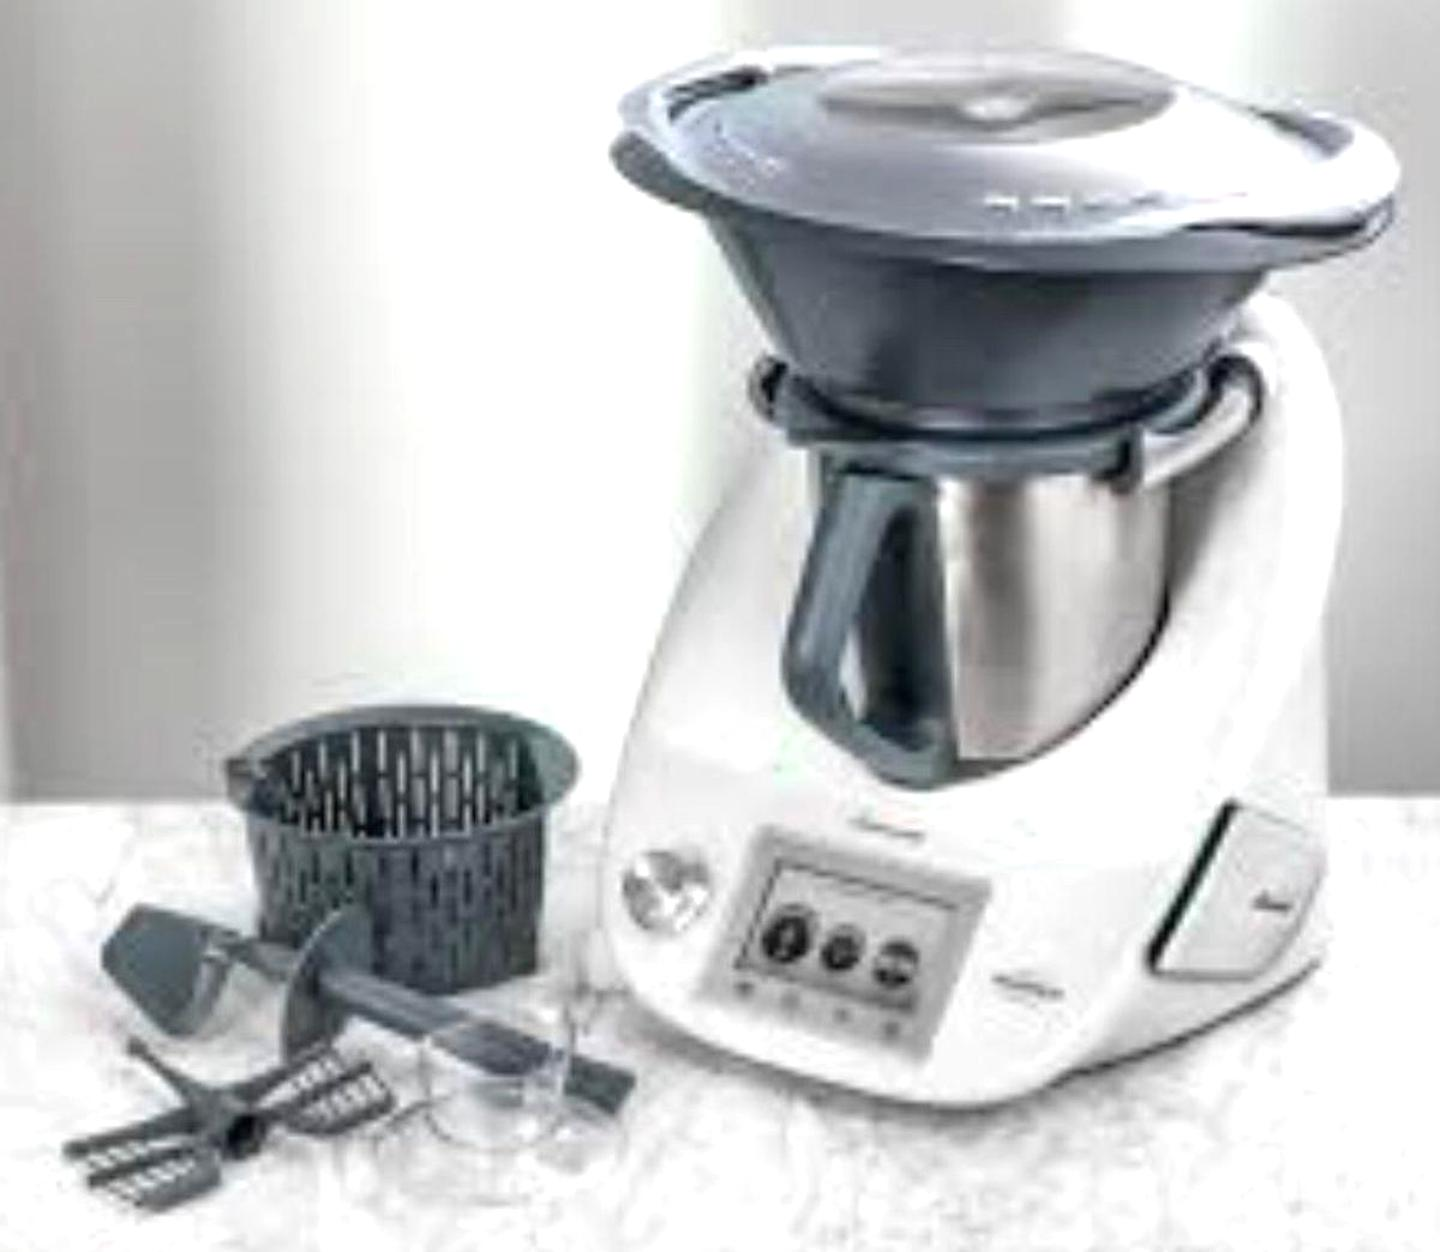 thermomix tm5 vorwerk d'occasion